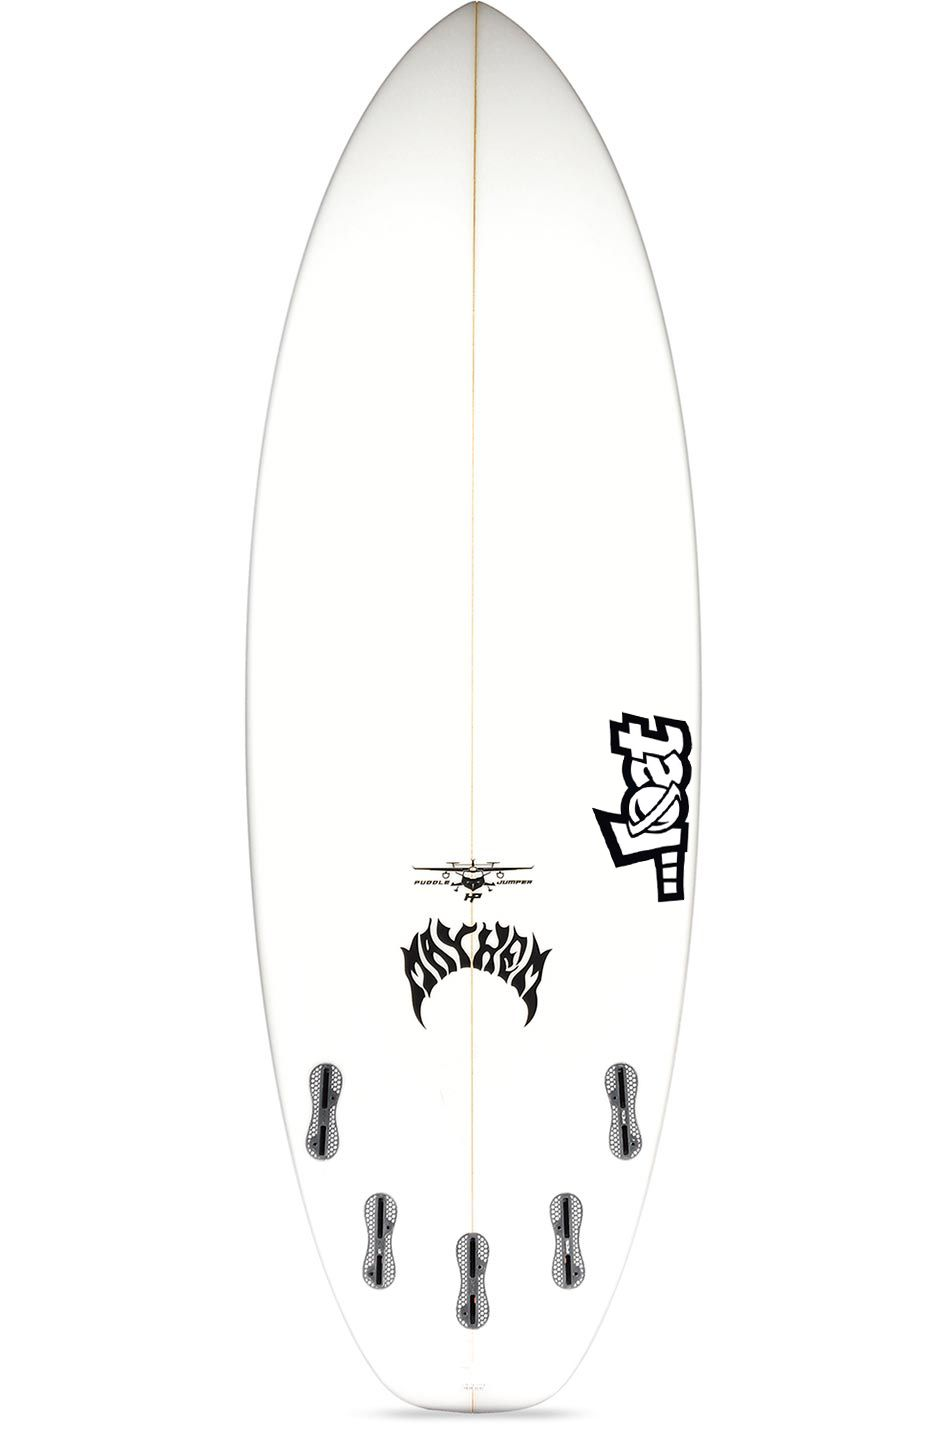 Prancha Surf Lost PUDDLE JUMPER HP 6'0 Squash Tail - White FCS II Multisystem 6ft0